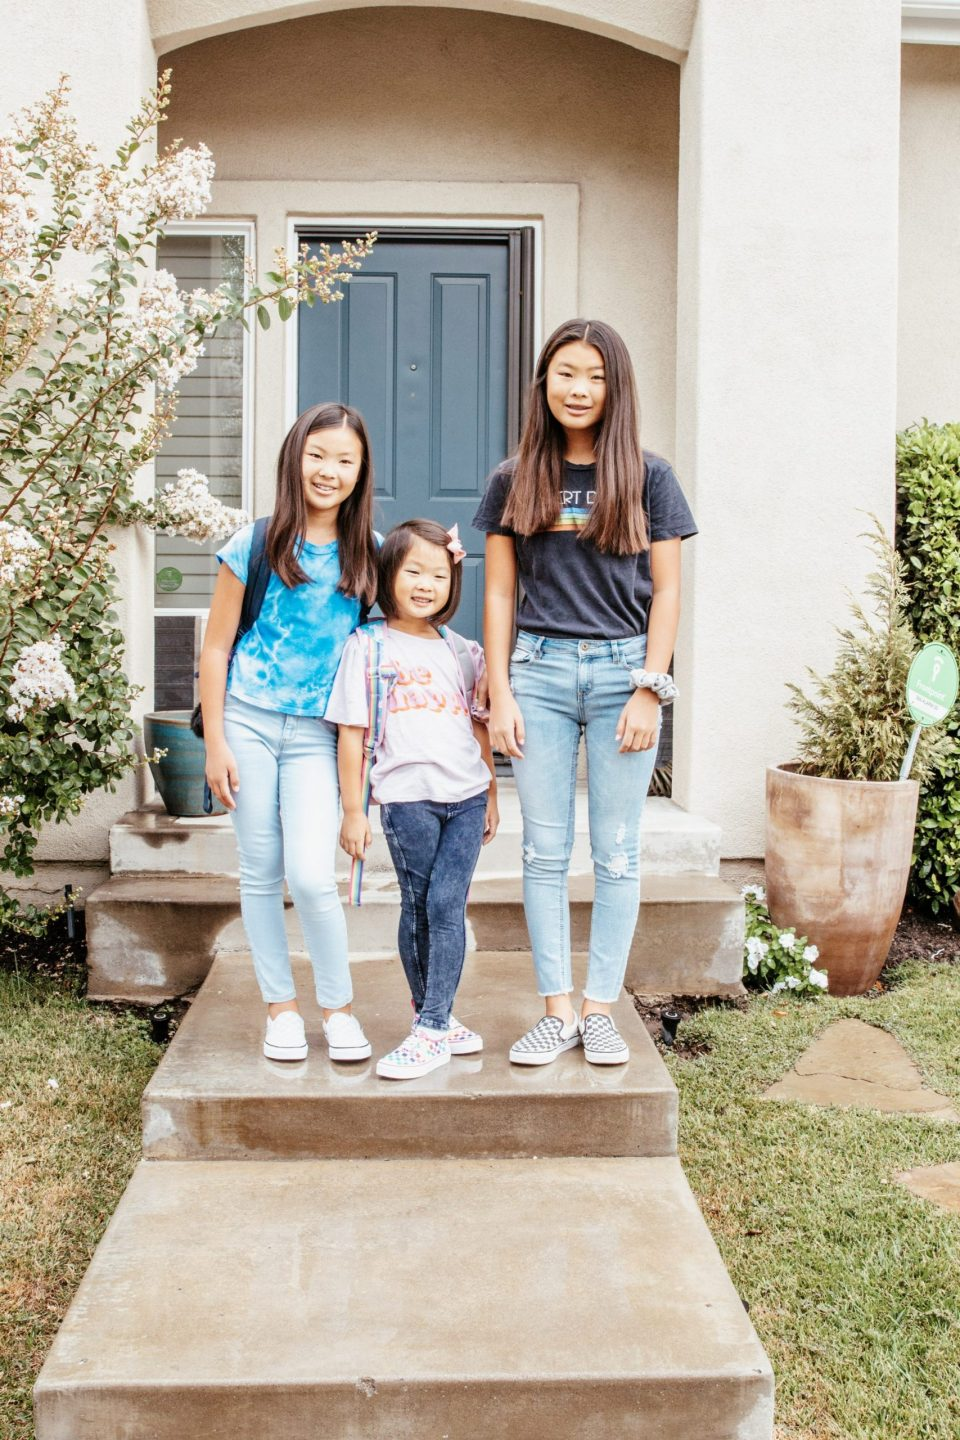 The girls' back to school photo from 2019